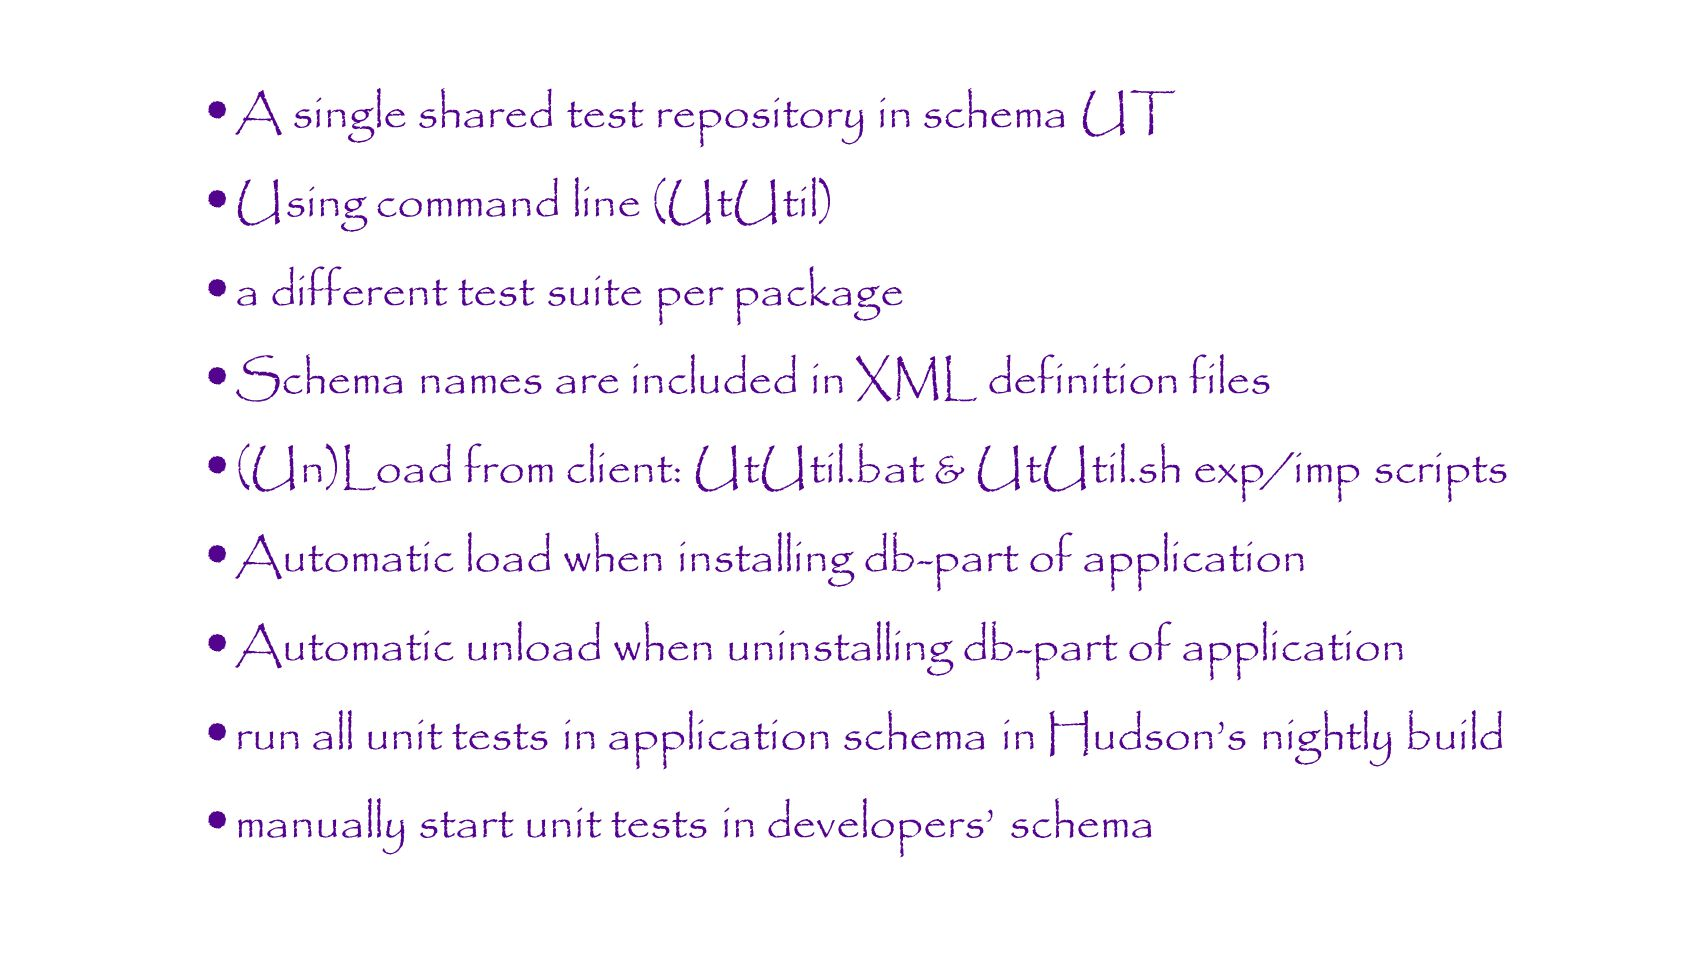 A single shared test repository in schema UT